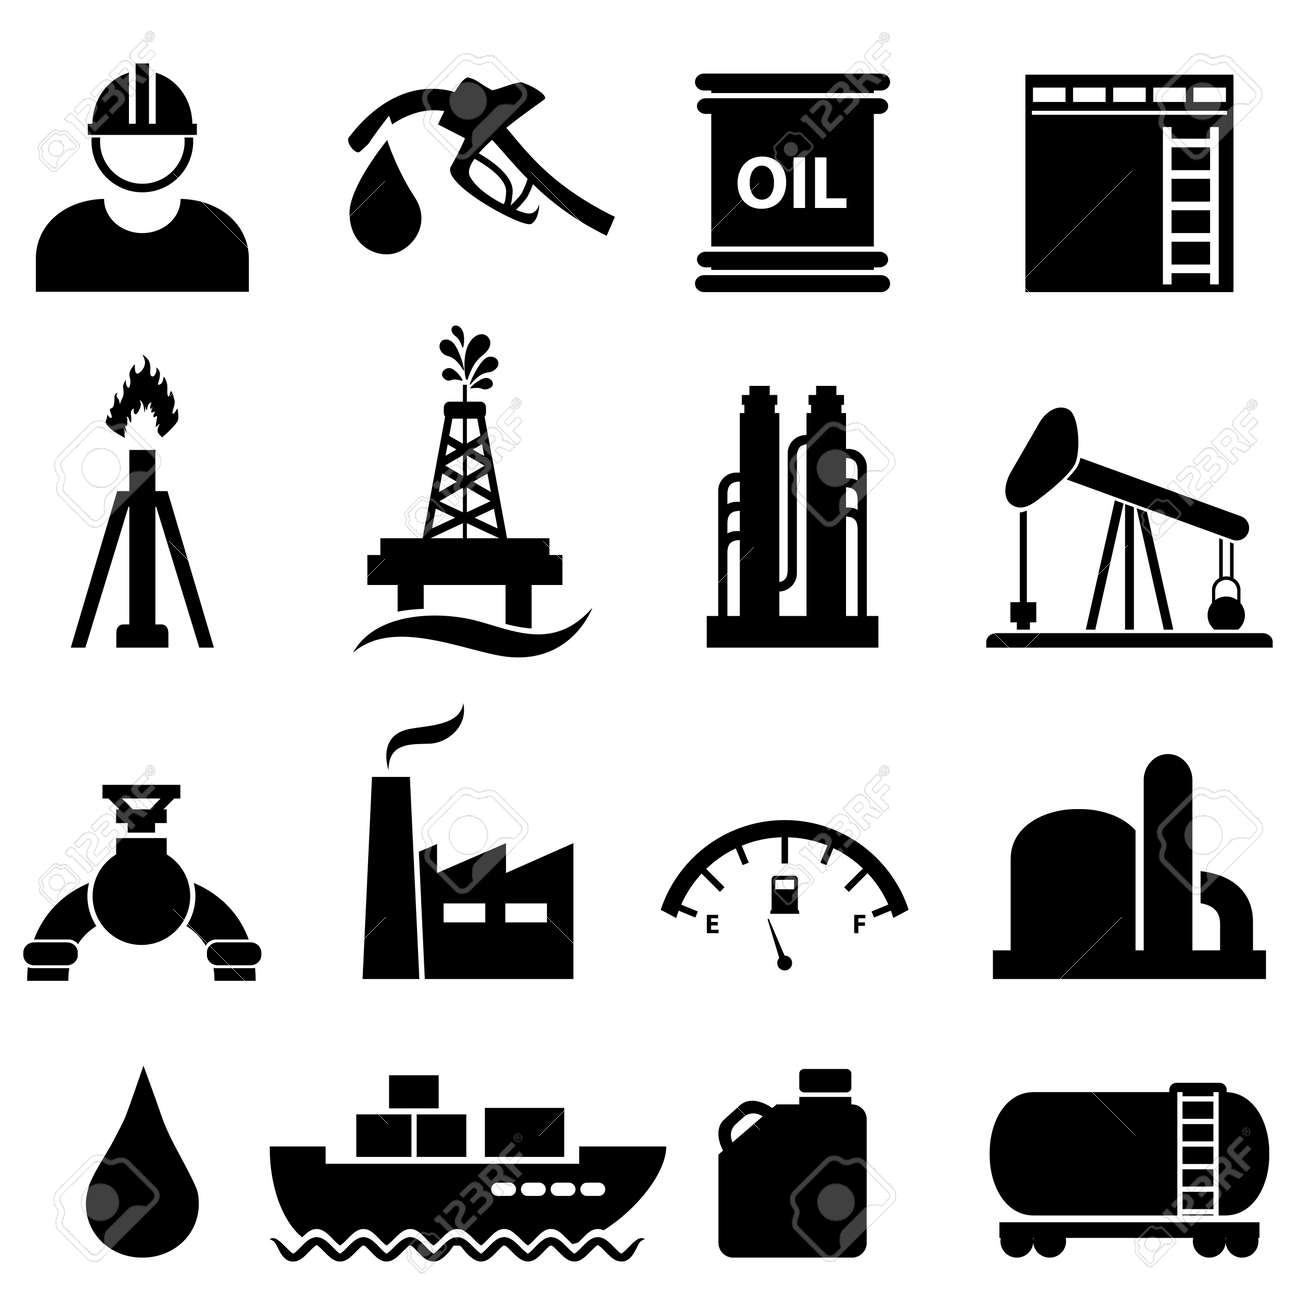 Oil, gasoline and petroleum related icon set - 23019480